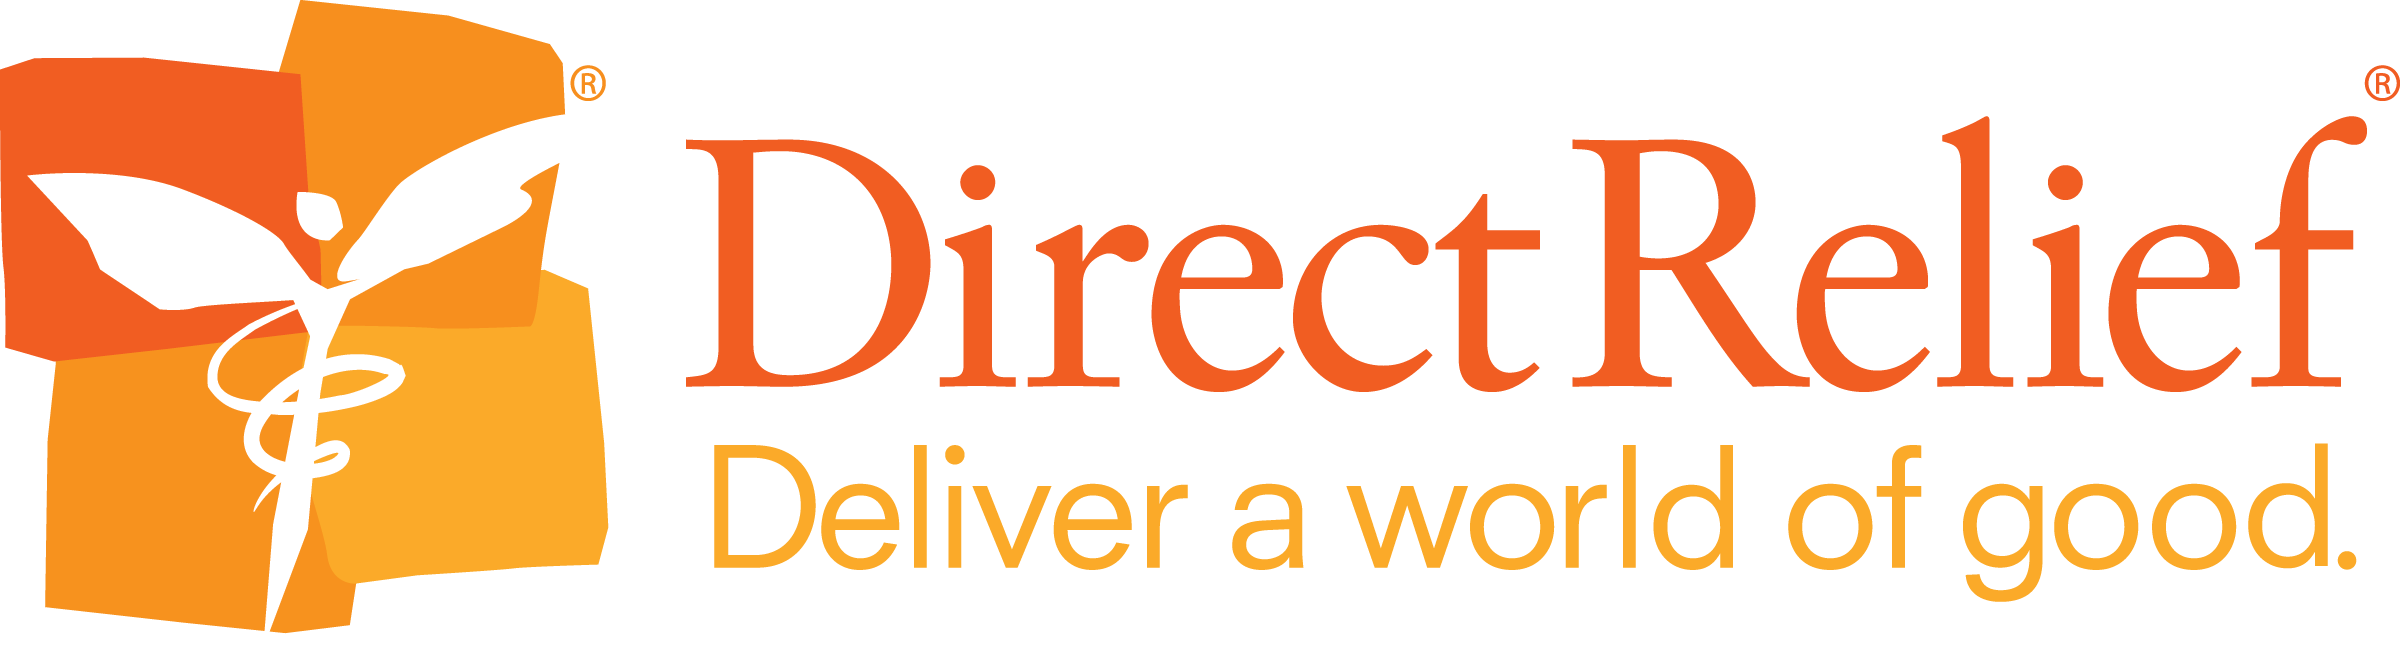 Direct Relief